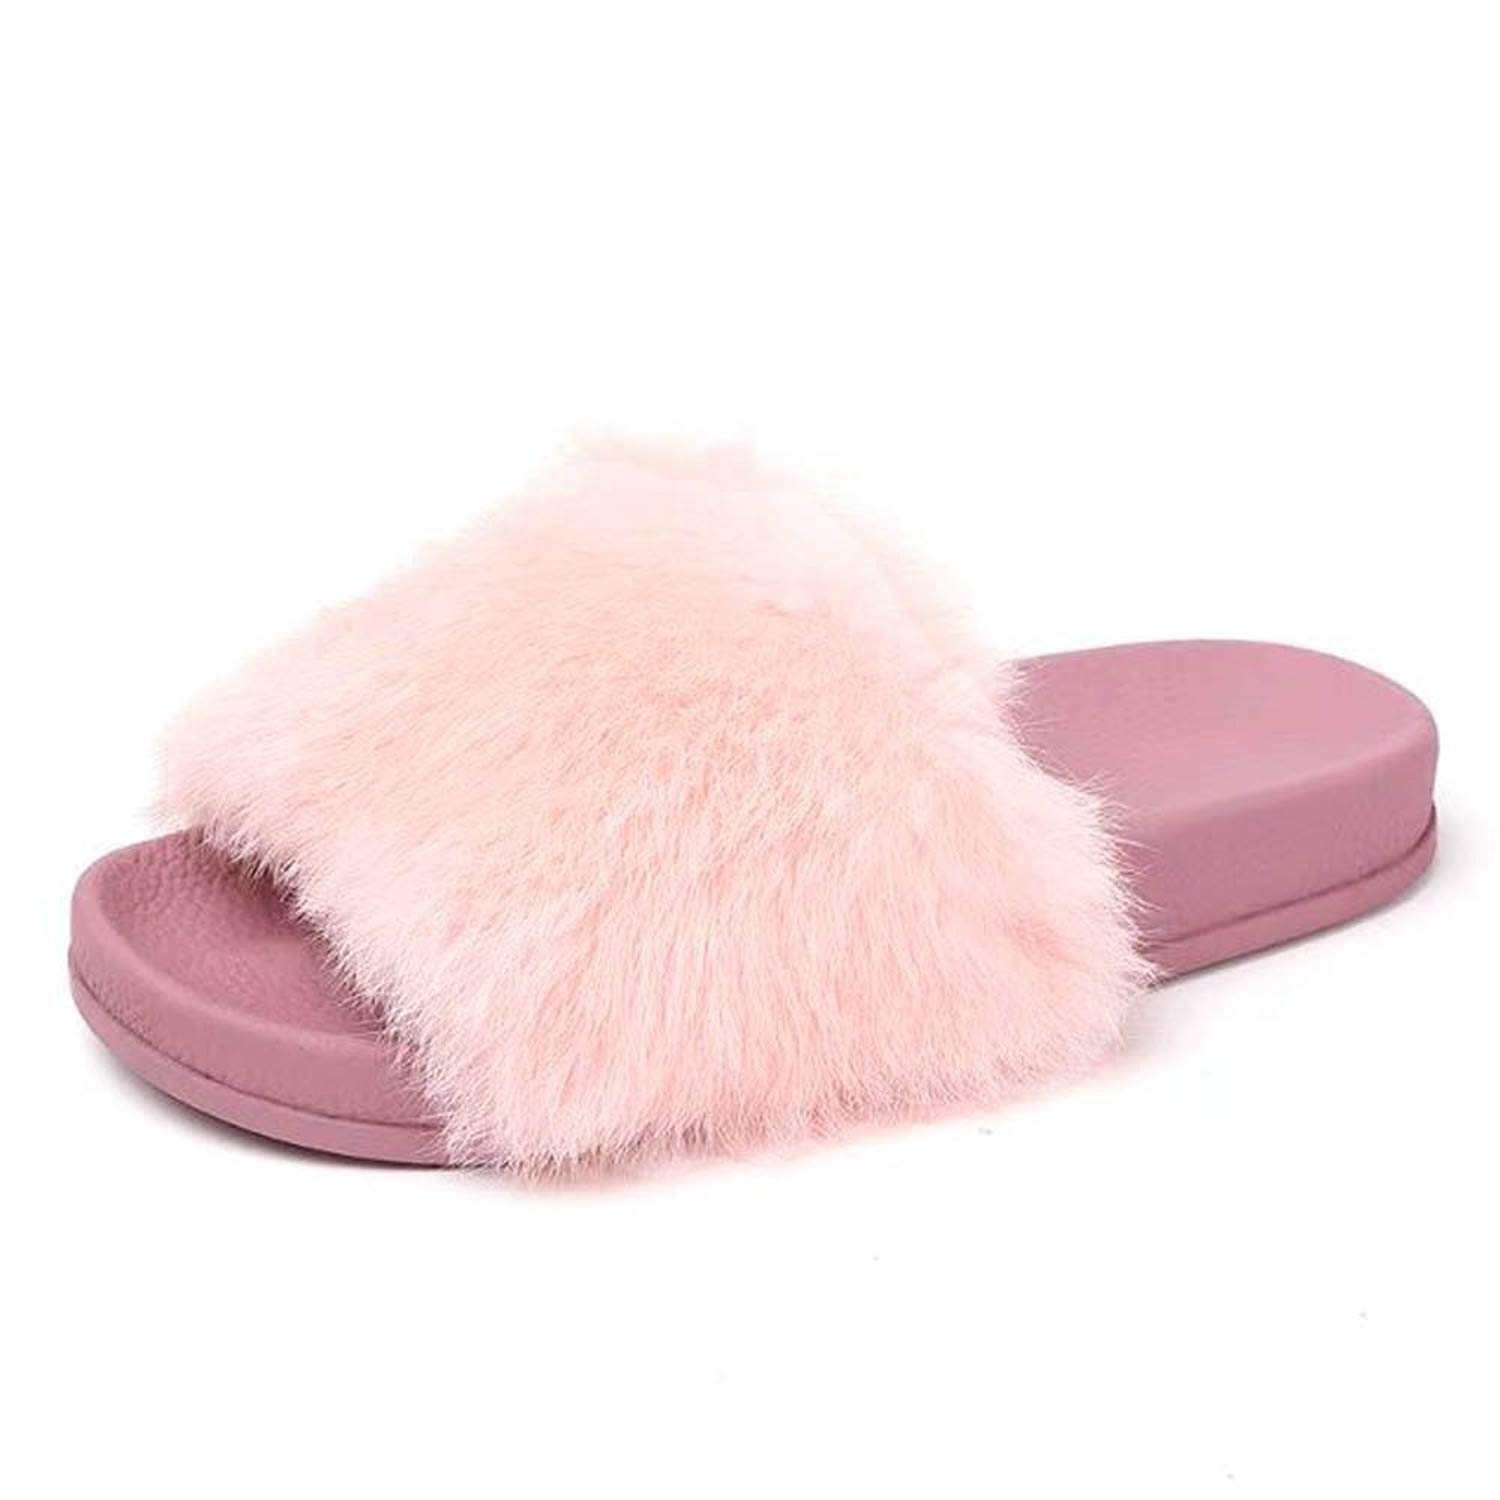 5c699ae05957e Get Quotations · Faber3 Fur Flat Slippers Women s Cozy Fleece House  Slippers Womens Indoor Warm Fleece Slippers Ladies Girls